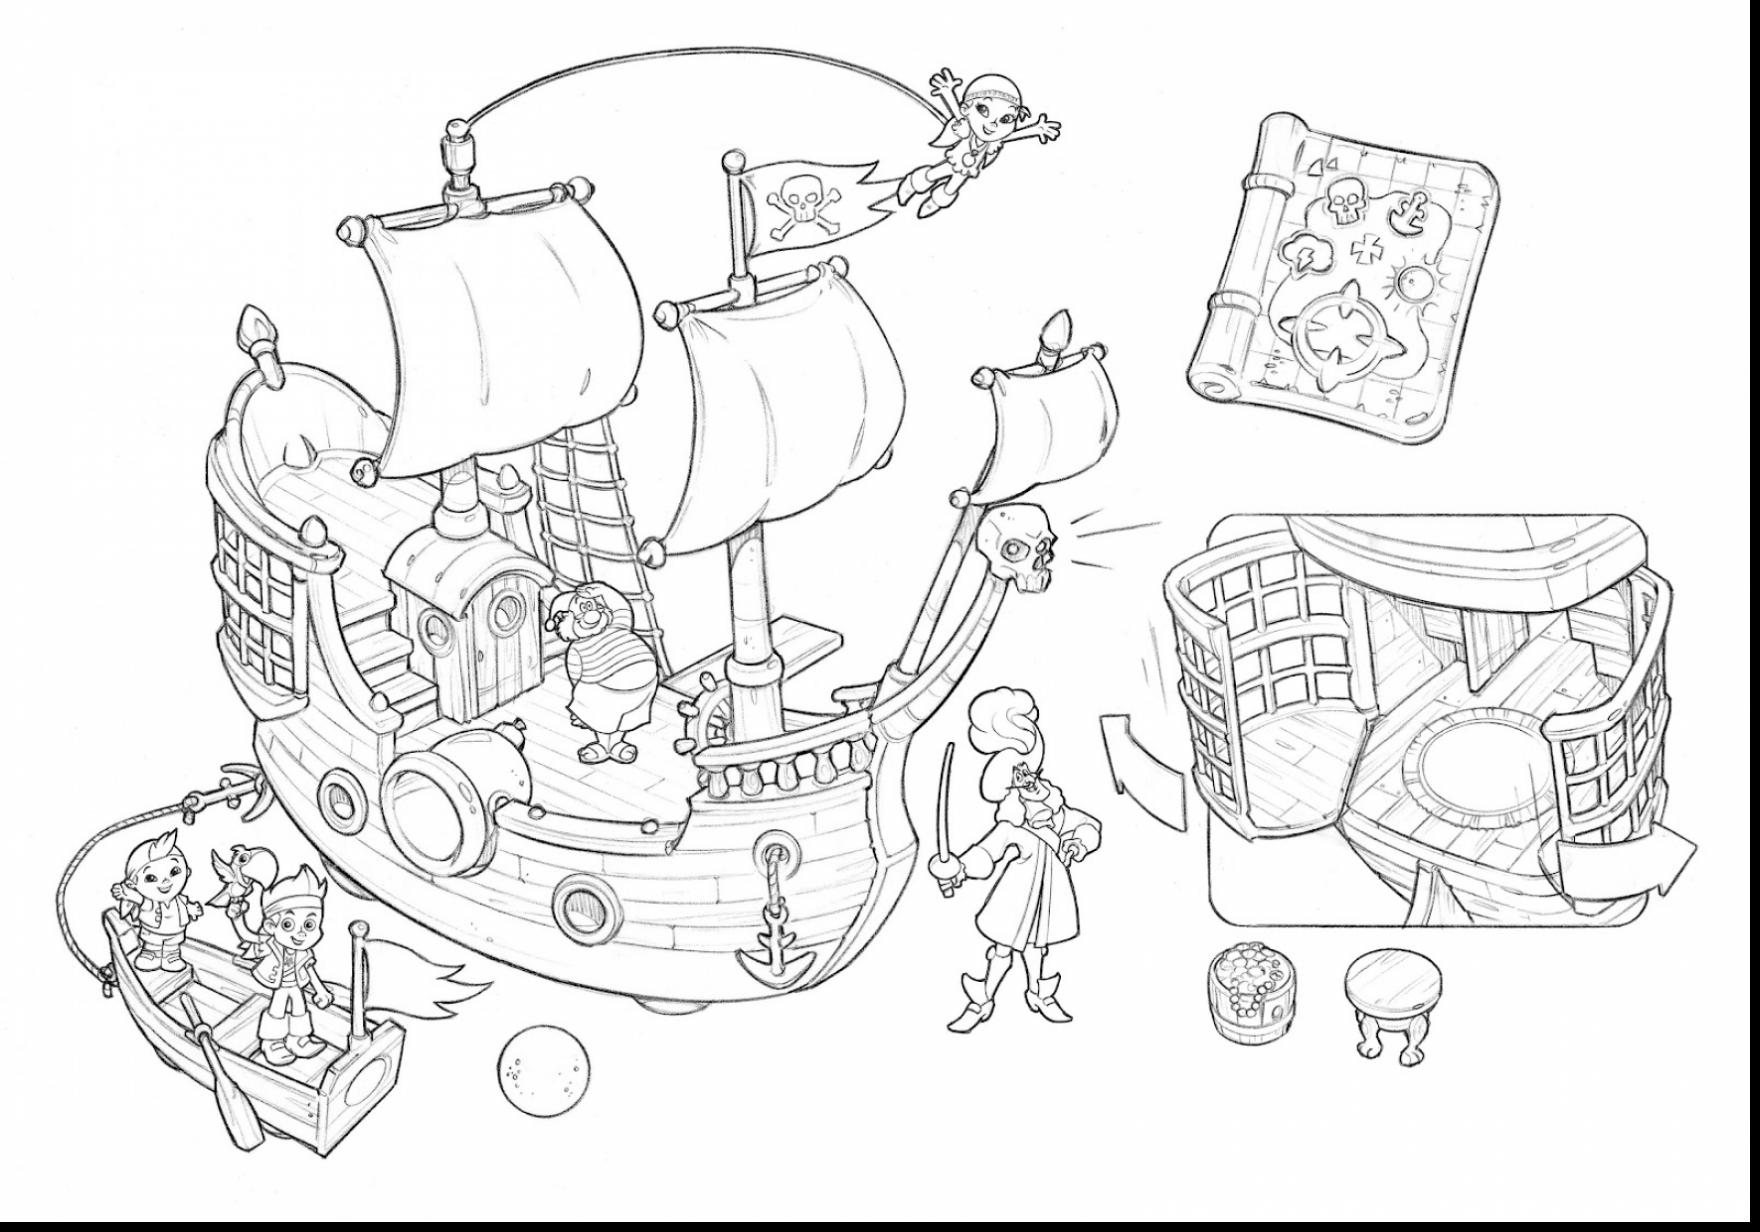 pirate ship drawing easy at getdrawings com free for personal use